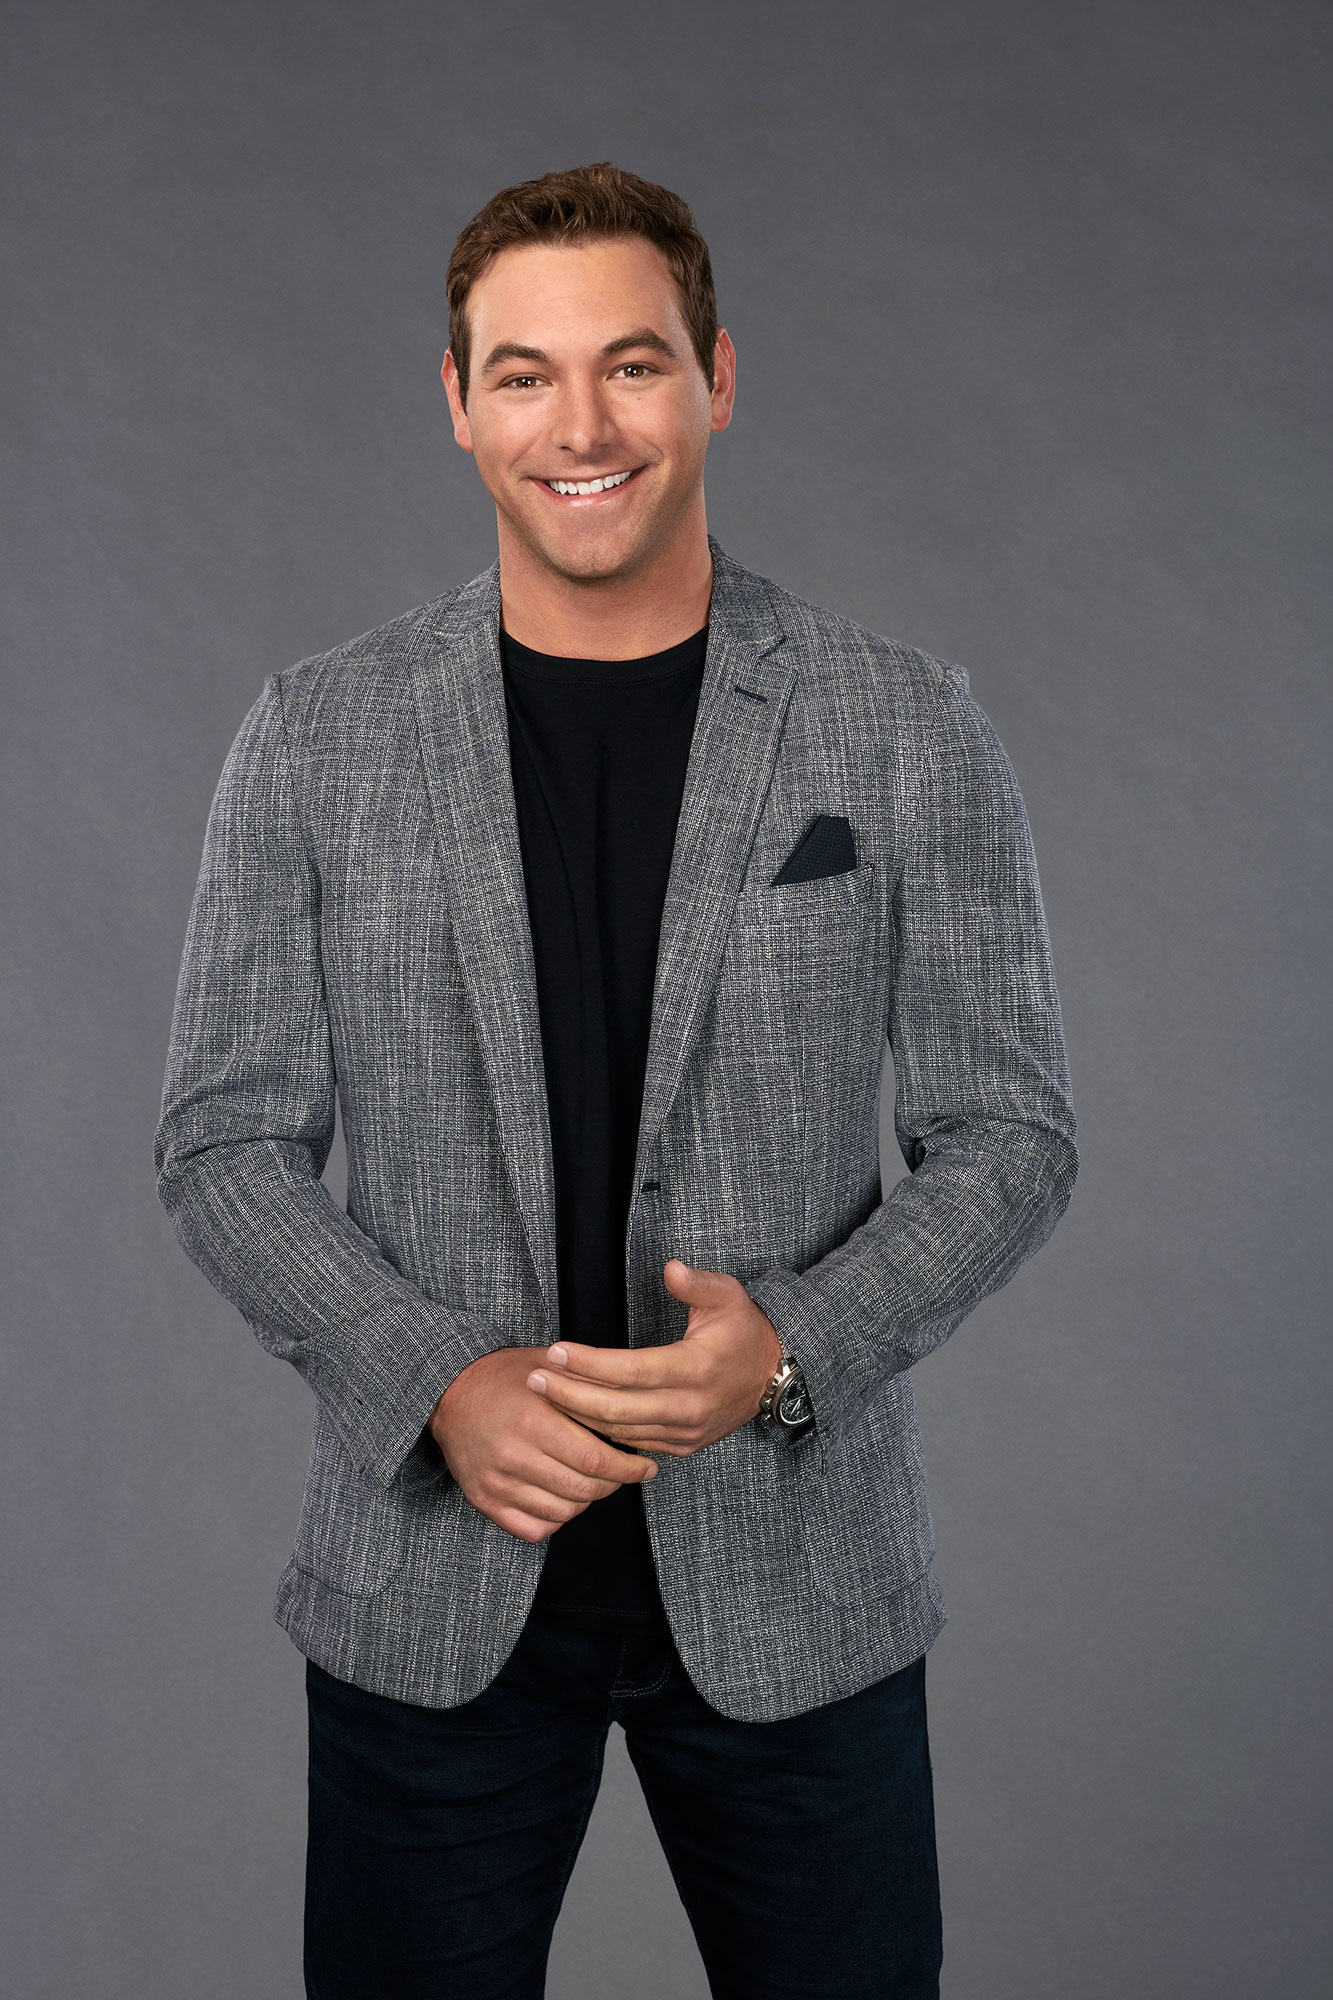 """'The Bachelorette' Season 15: 11 Strangest Revelations From Hannah Brown's Suitors' Bios - The 27-year-old's pilot's """"favorite pastime is watching The Bachelor and drinking cocktails with his mom."""""""